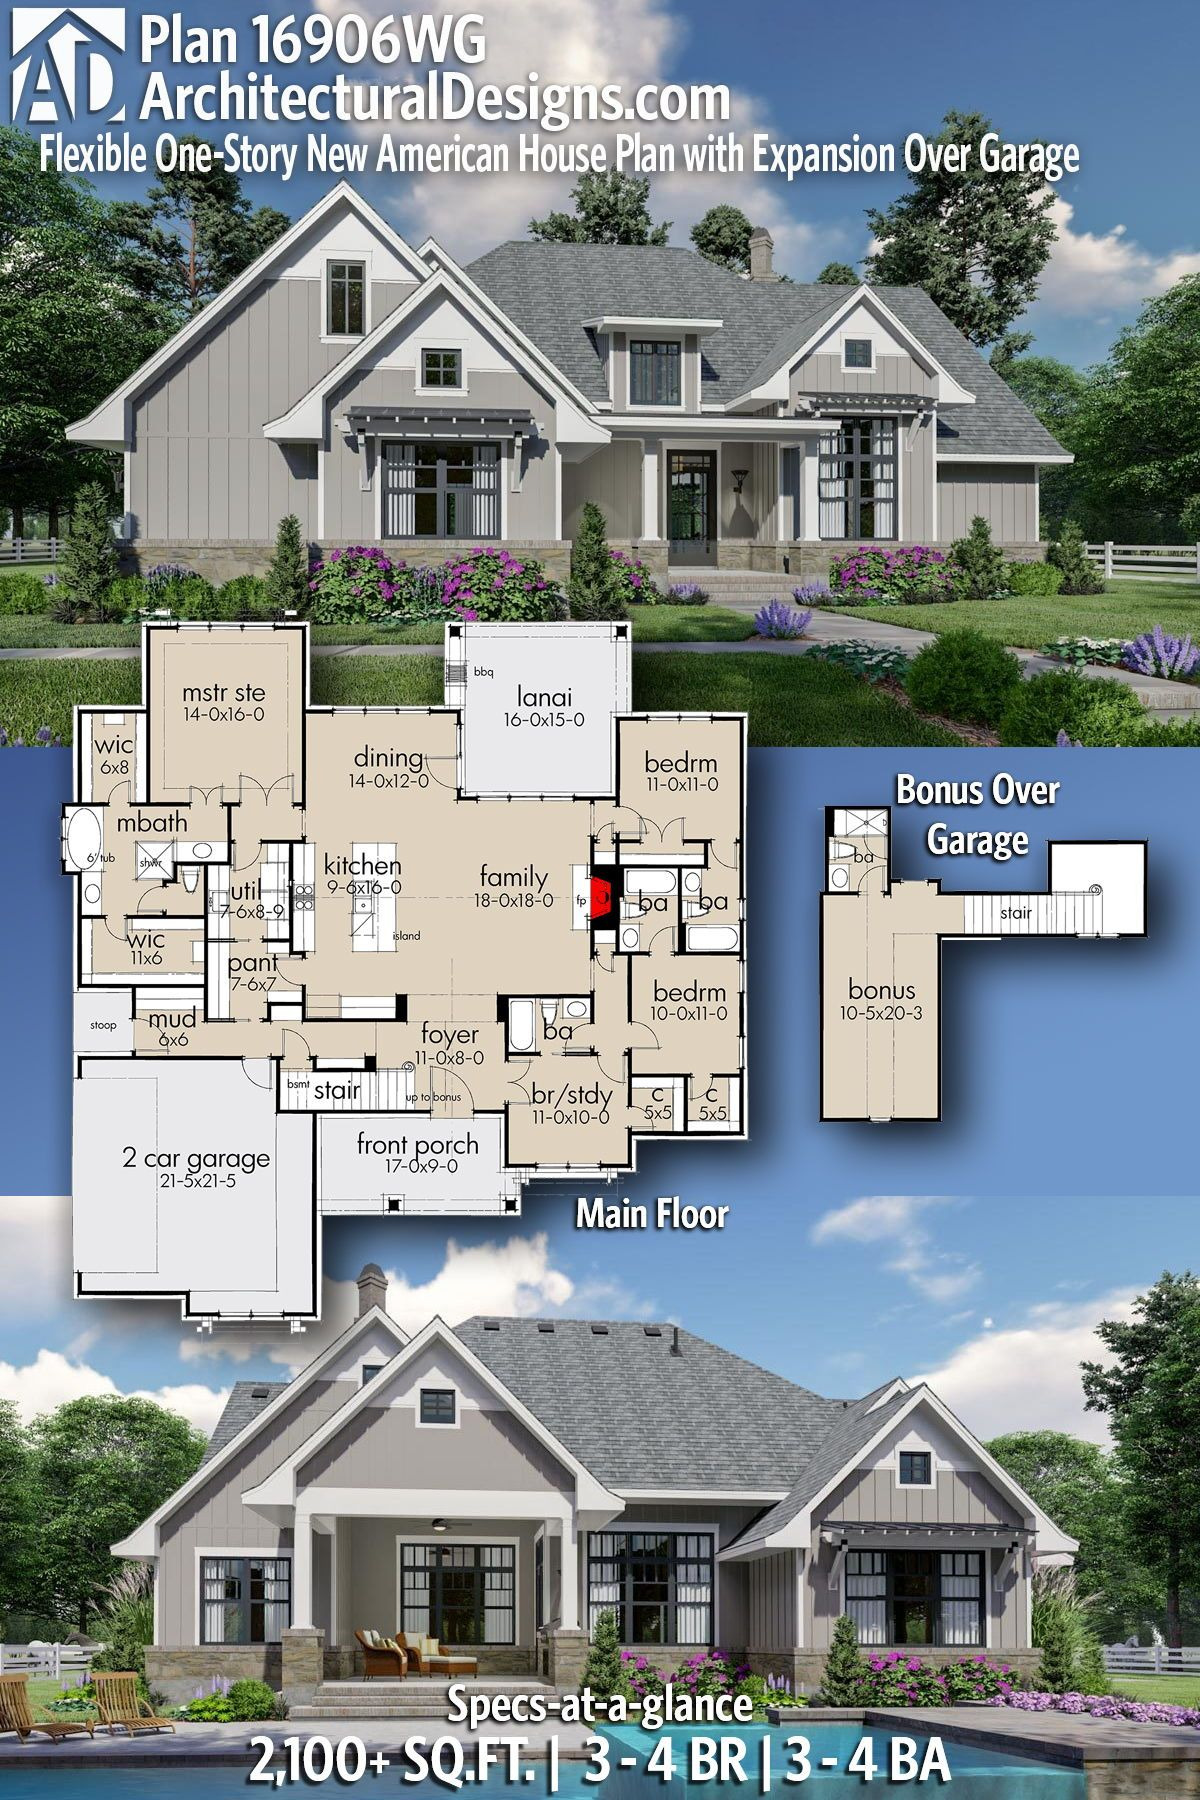 American House Design Pictures Inspirational Plan Wg Flexible E Story New American House Plan